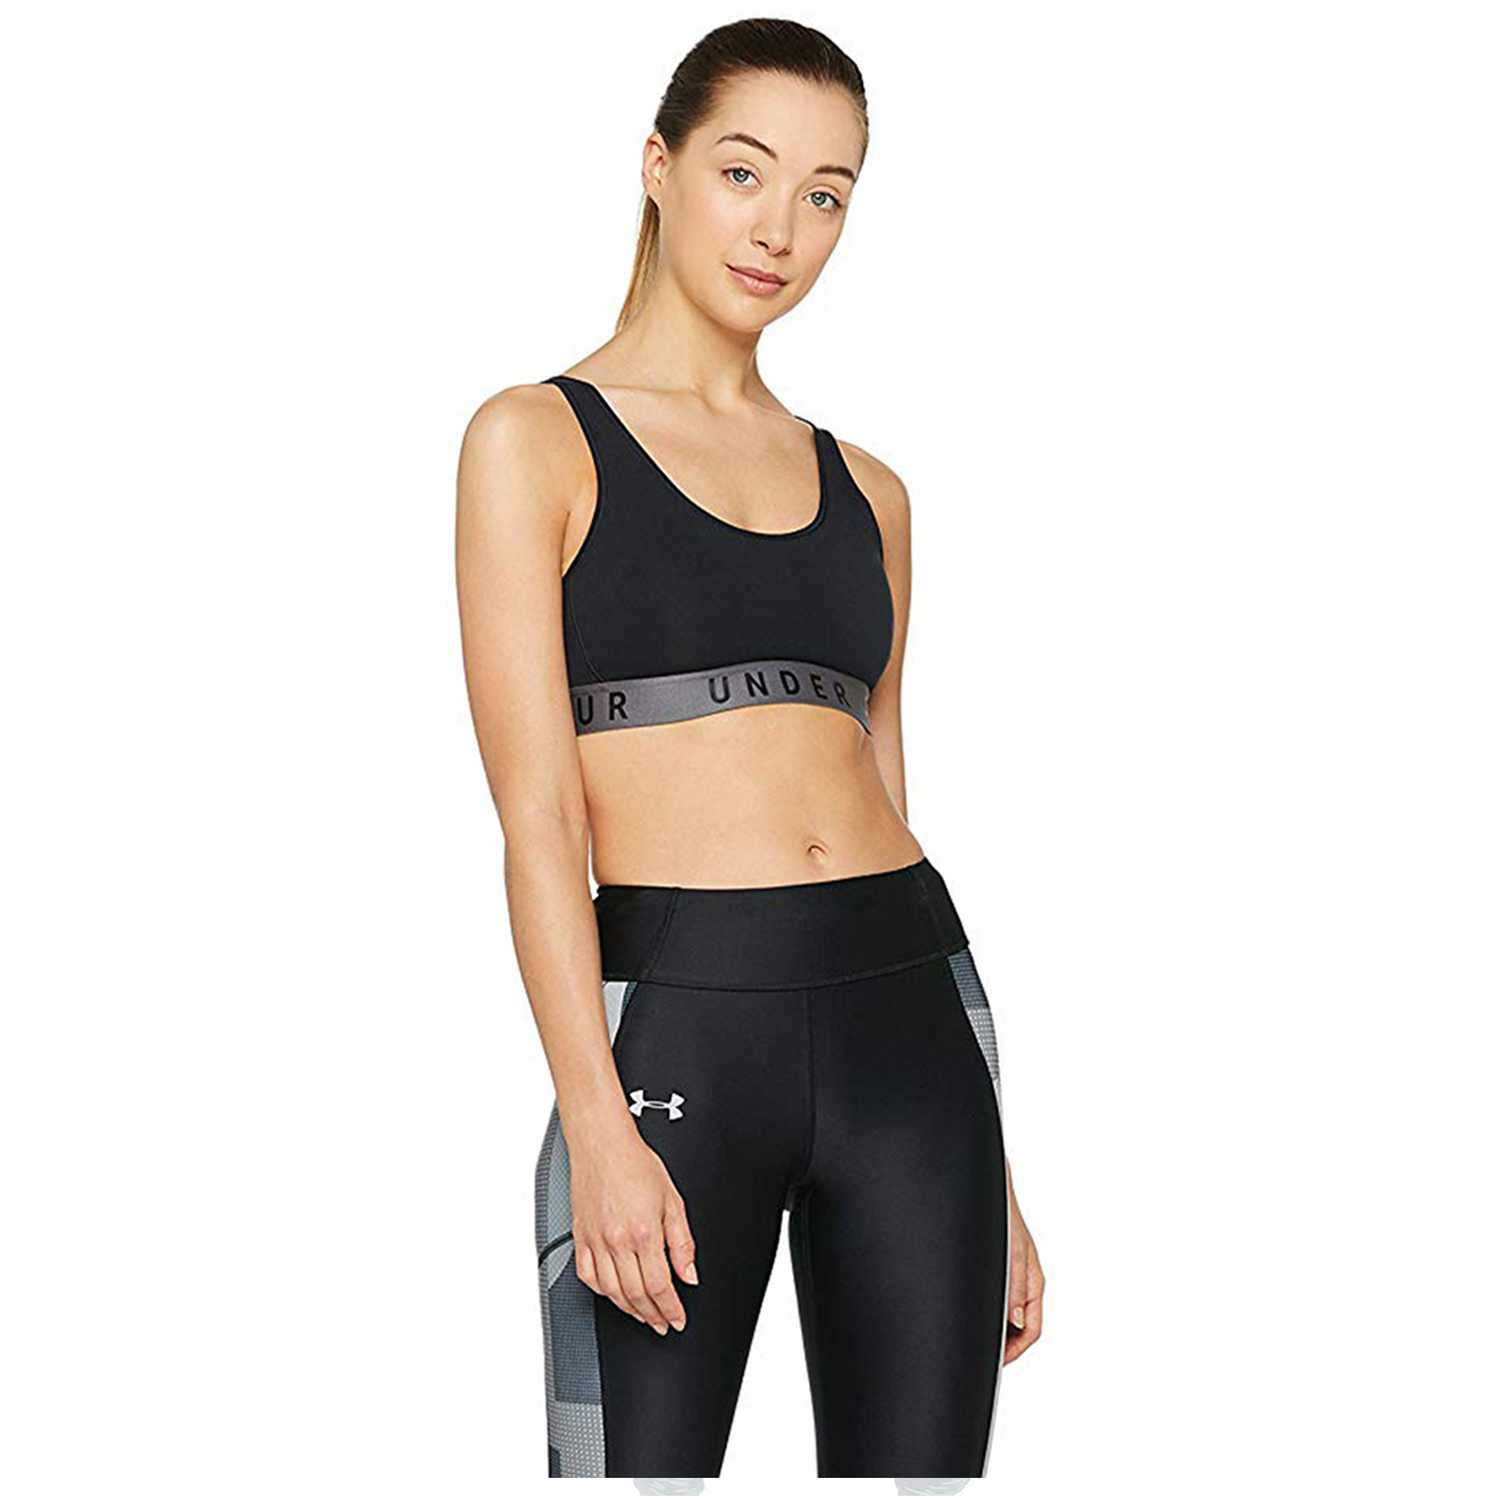 Top de Mujer Under Armour Negro favorite cotton everyday bra